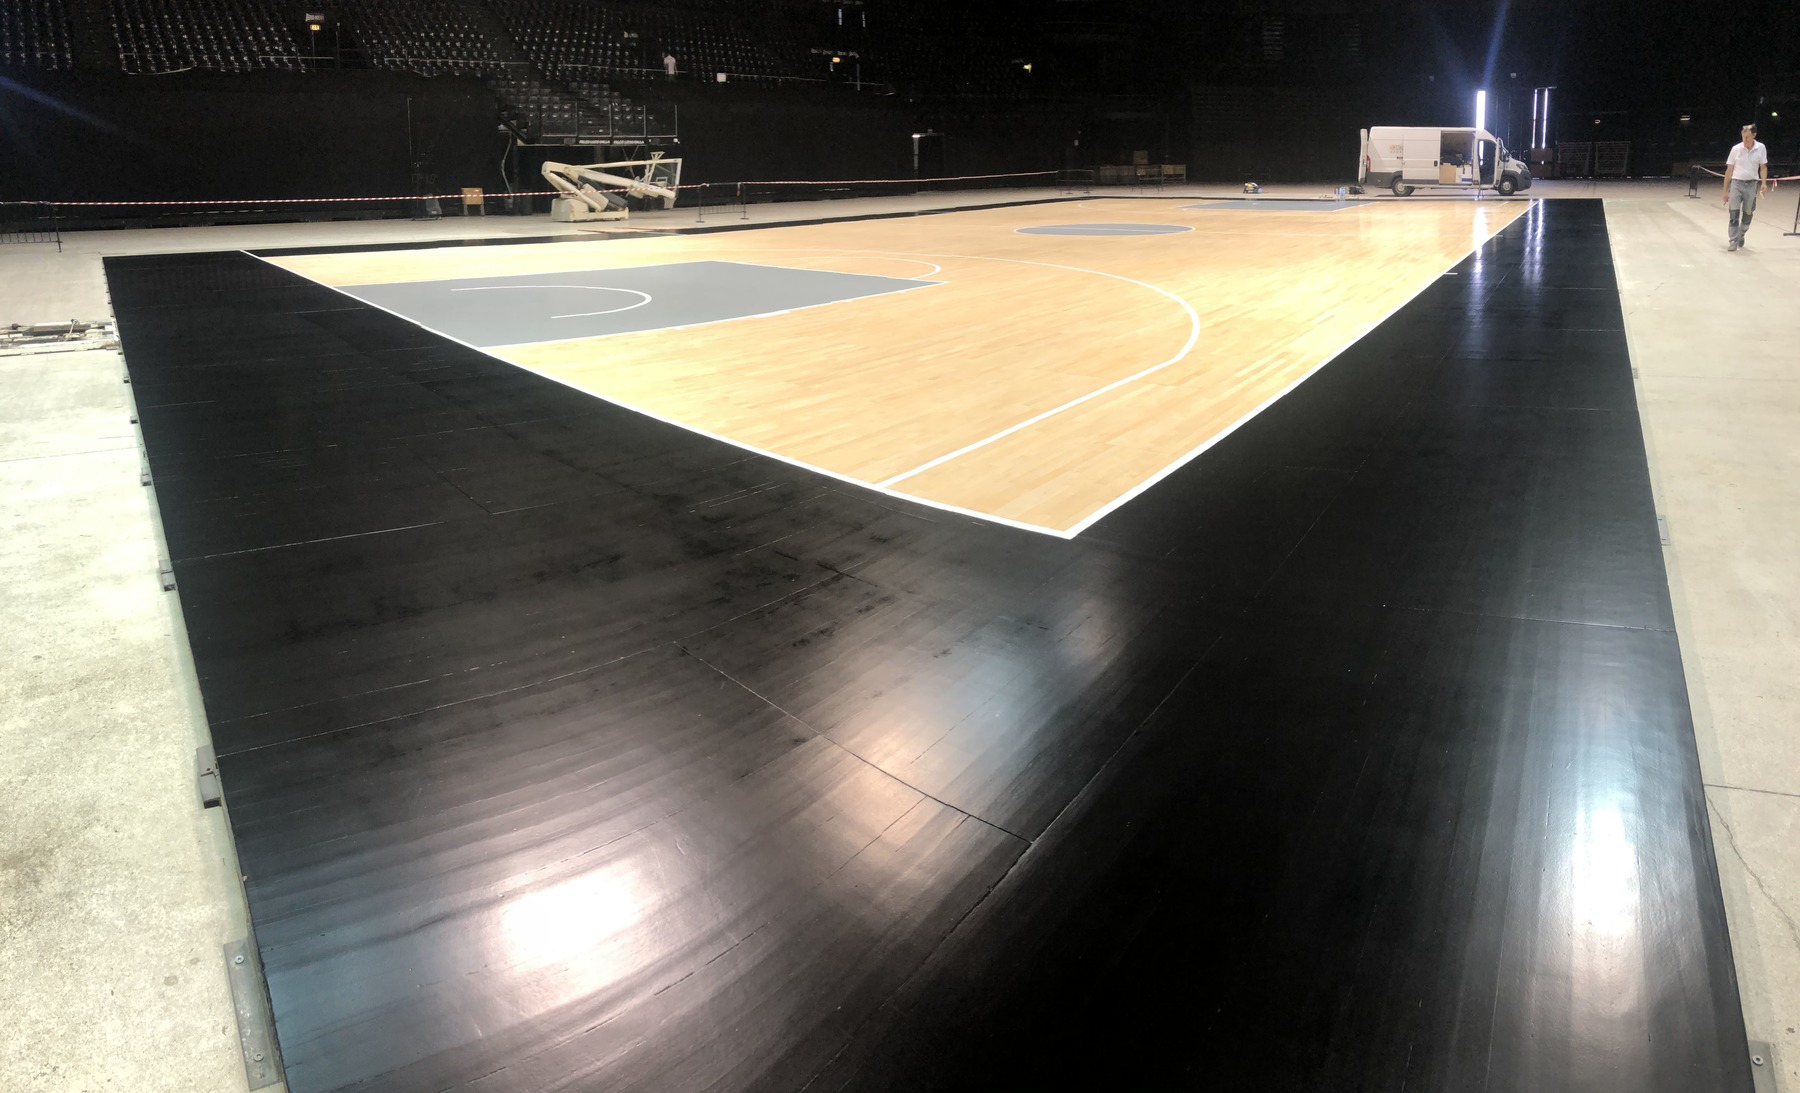 The new colors of sports parquet